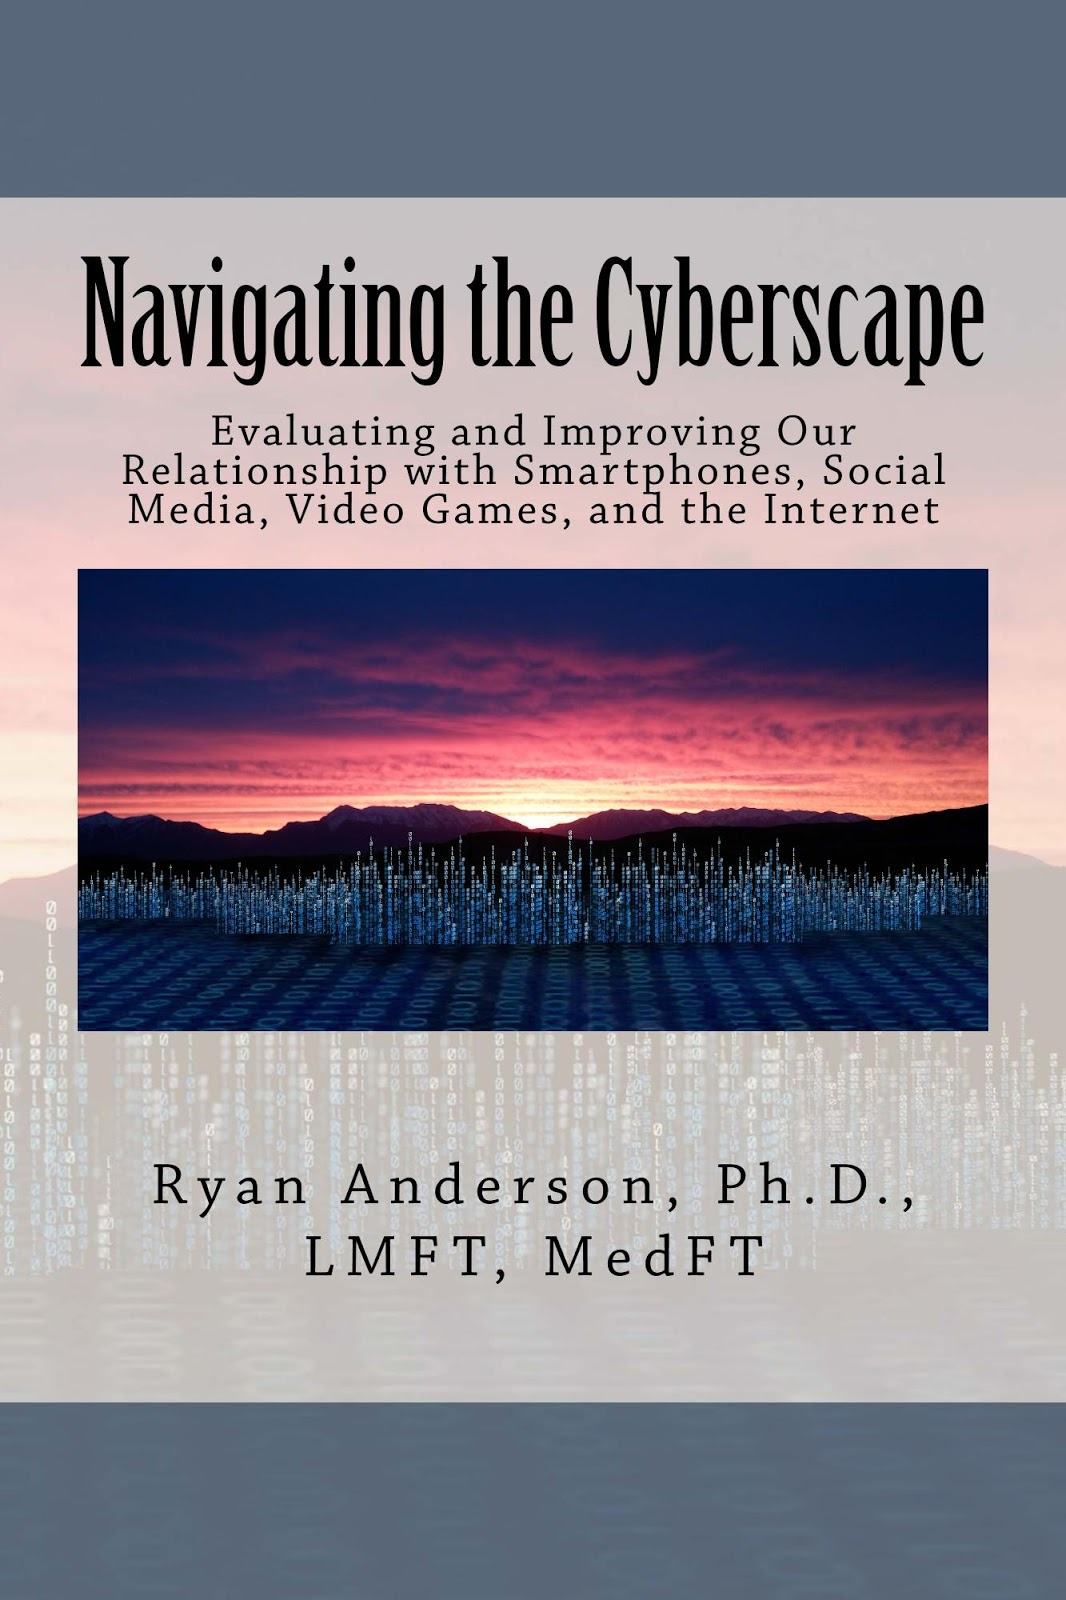 If you or your family spend any time on the internet or other technology, this book is a must read!